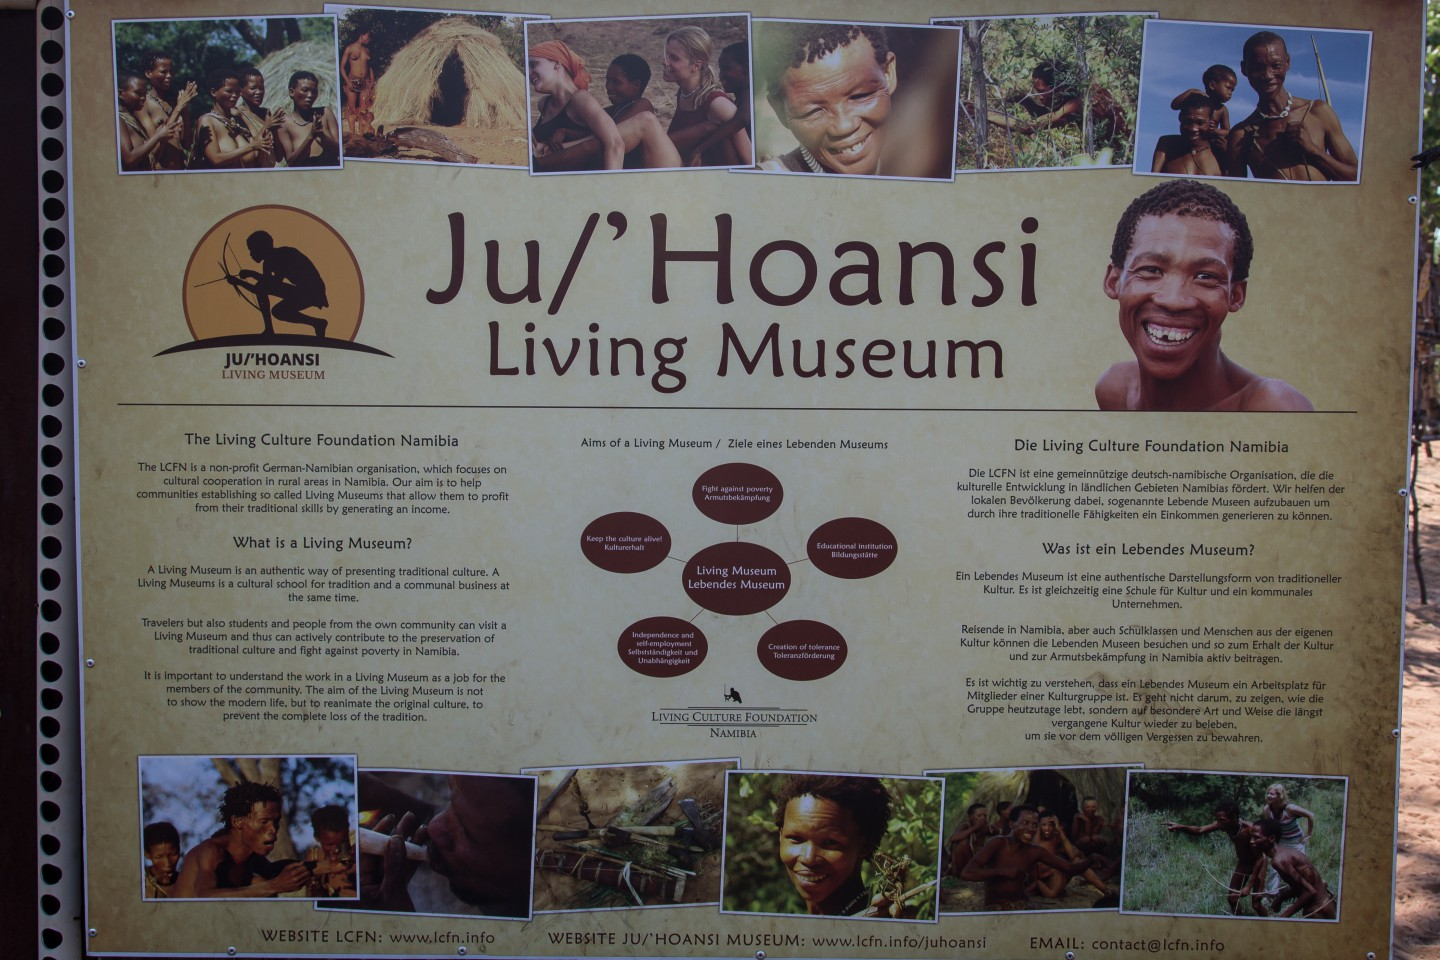 The Ju/\'Hoansi Living San Museum | The Road Chose Me